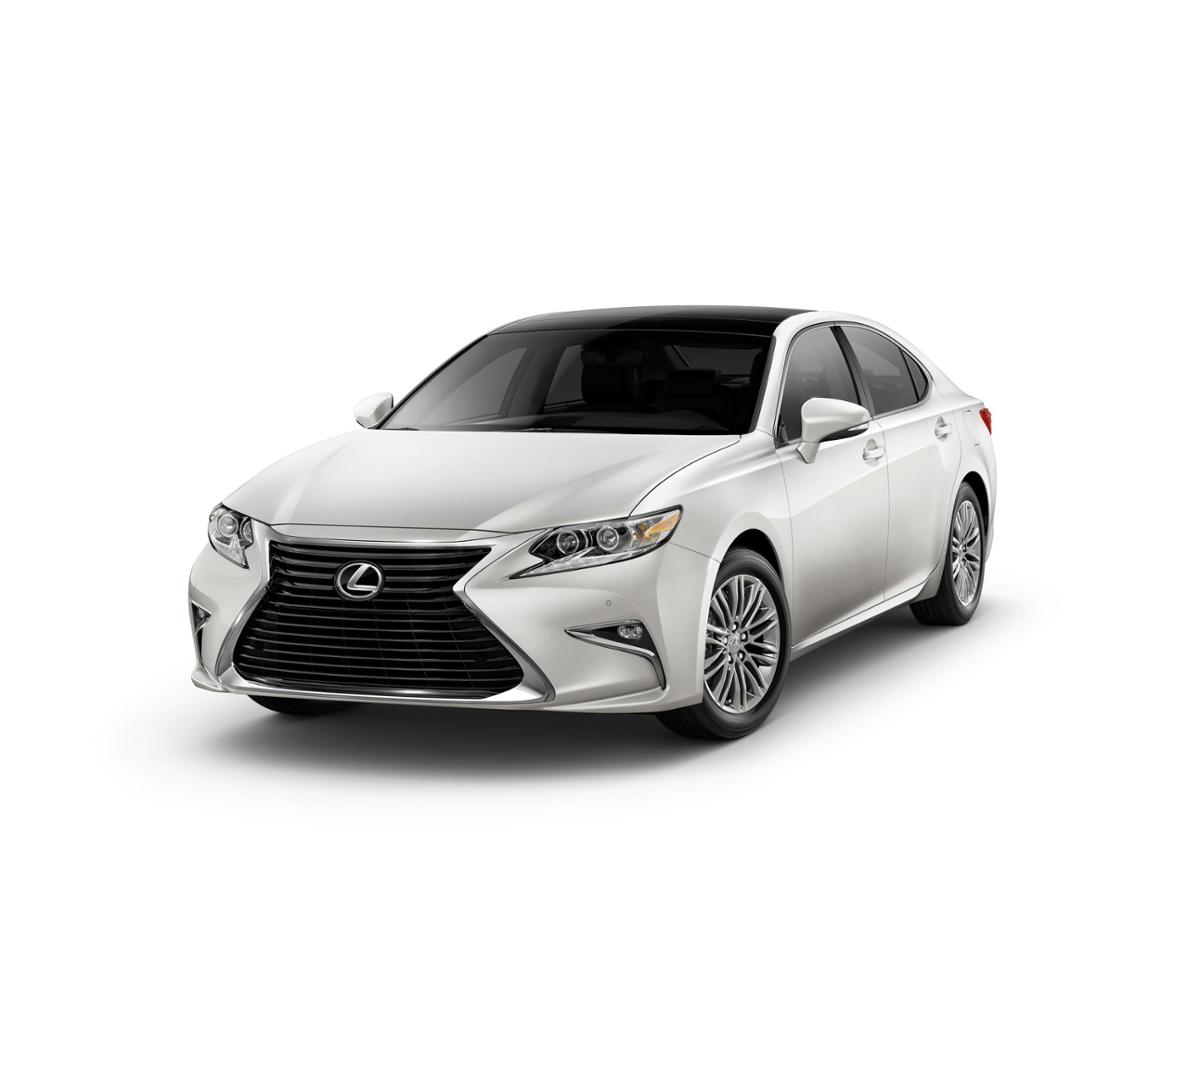 Lexus Es 350 For Sale: 2018 Eminent White Pearl Lexus ES 350 For Sale At Ray